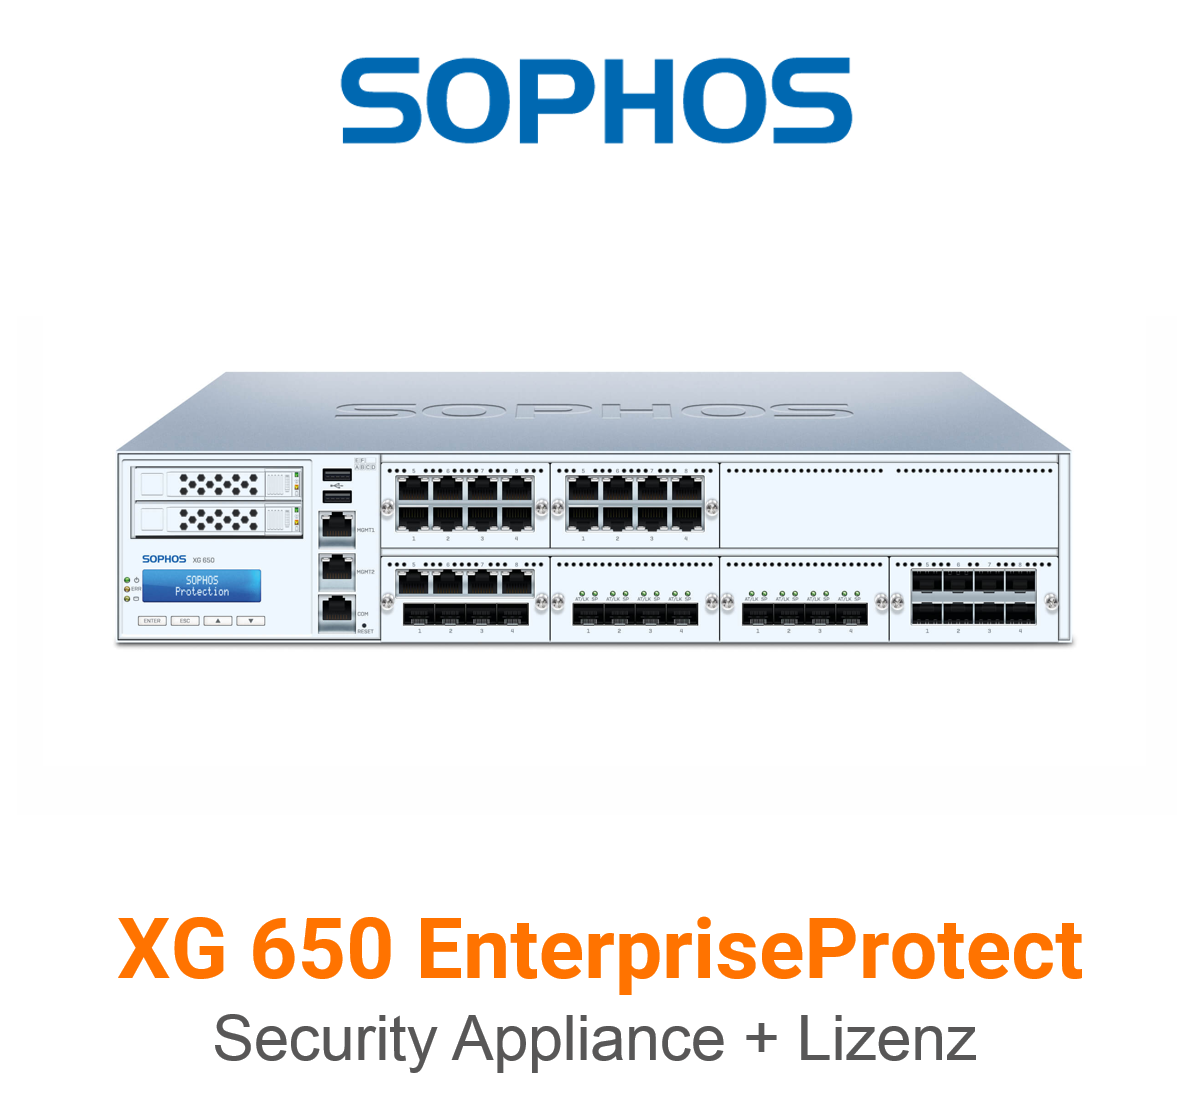 Sophos XG 650 EnterpriseProtect Bundle (Hardware + Lizenz)